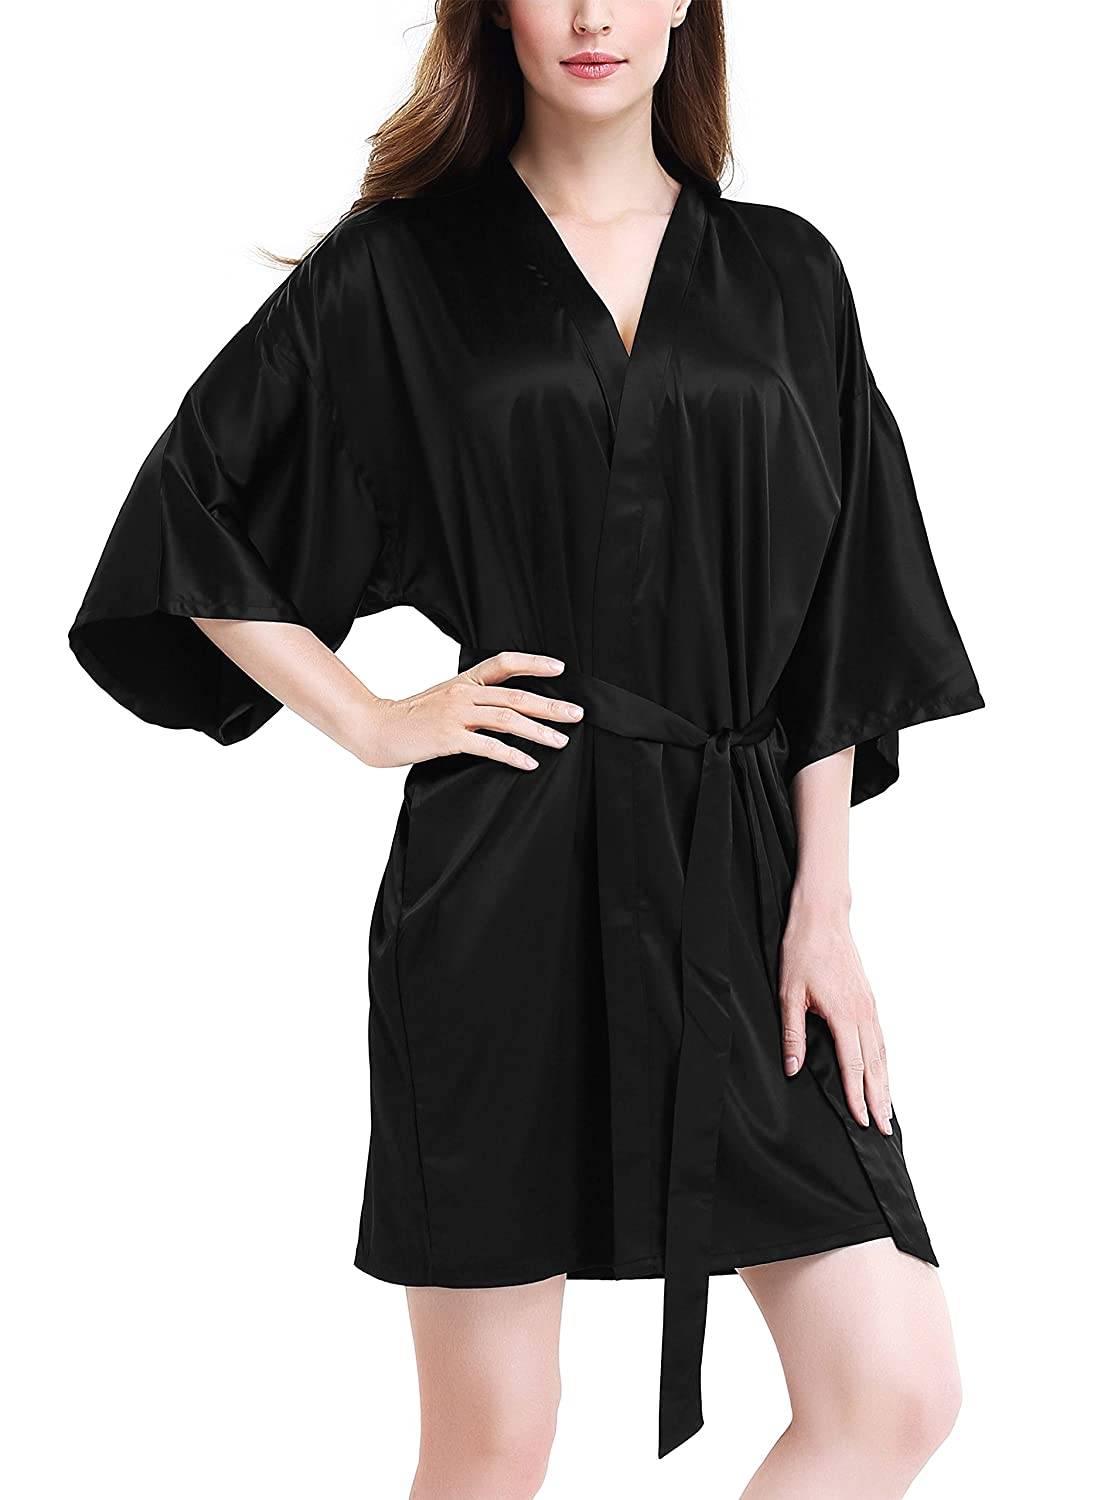 e950b2a53d5 Top 10 wholesale Sexy Black Silk Robe - Chinabrands.com